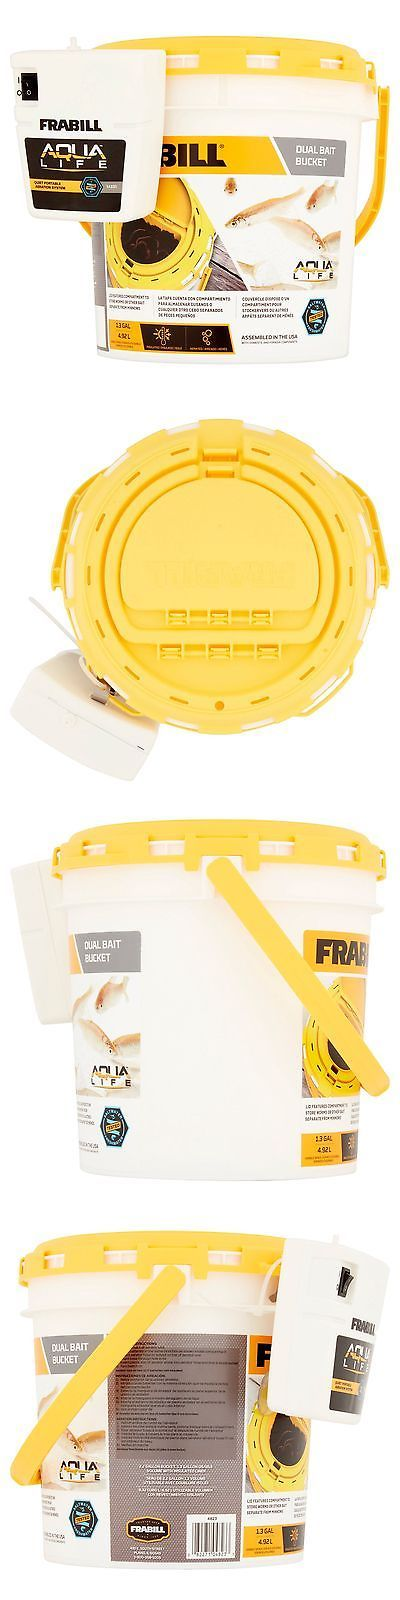 Bait Buckets 179986: Dual Bait Bucket W Clip-On Aerator Storage Compartment Lid Fishing Pail New -> BUY IT NOW ONLY: $37.25 on eBay!